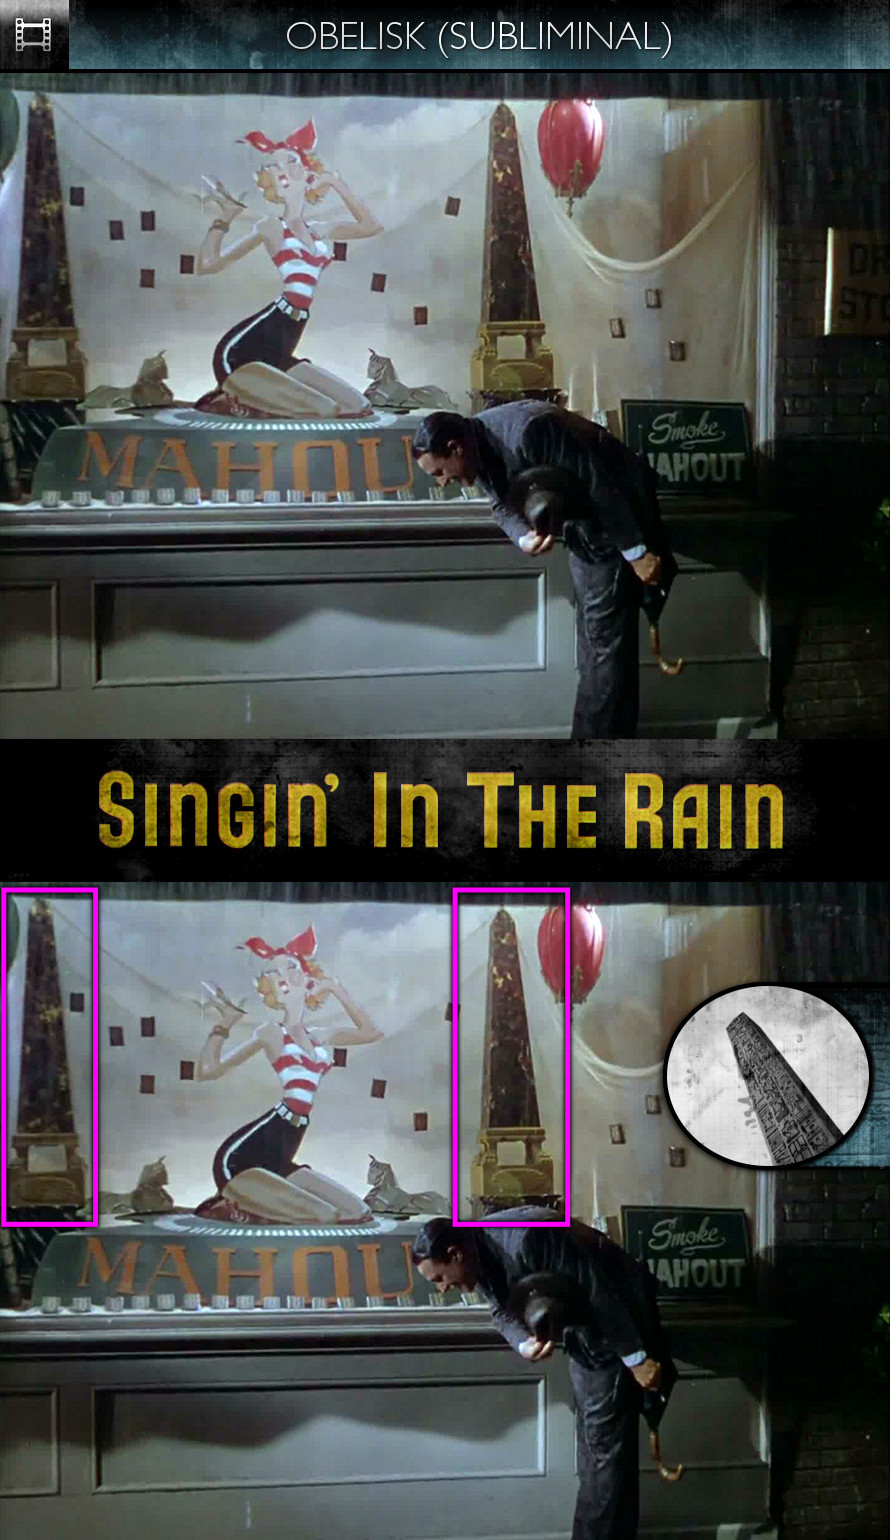 Singin' In The Rain (1952) - Obelisk - Subliminal